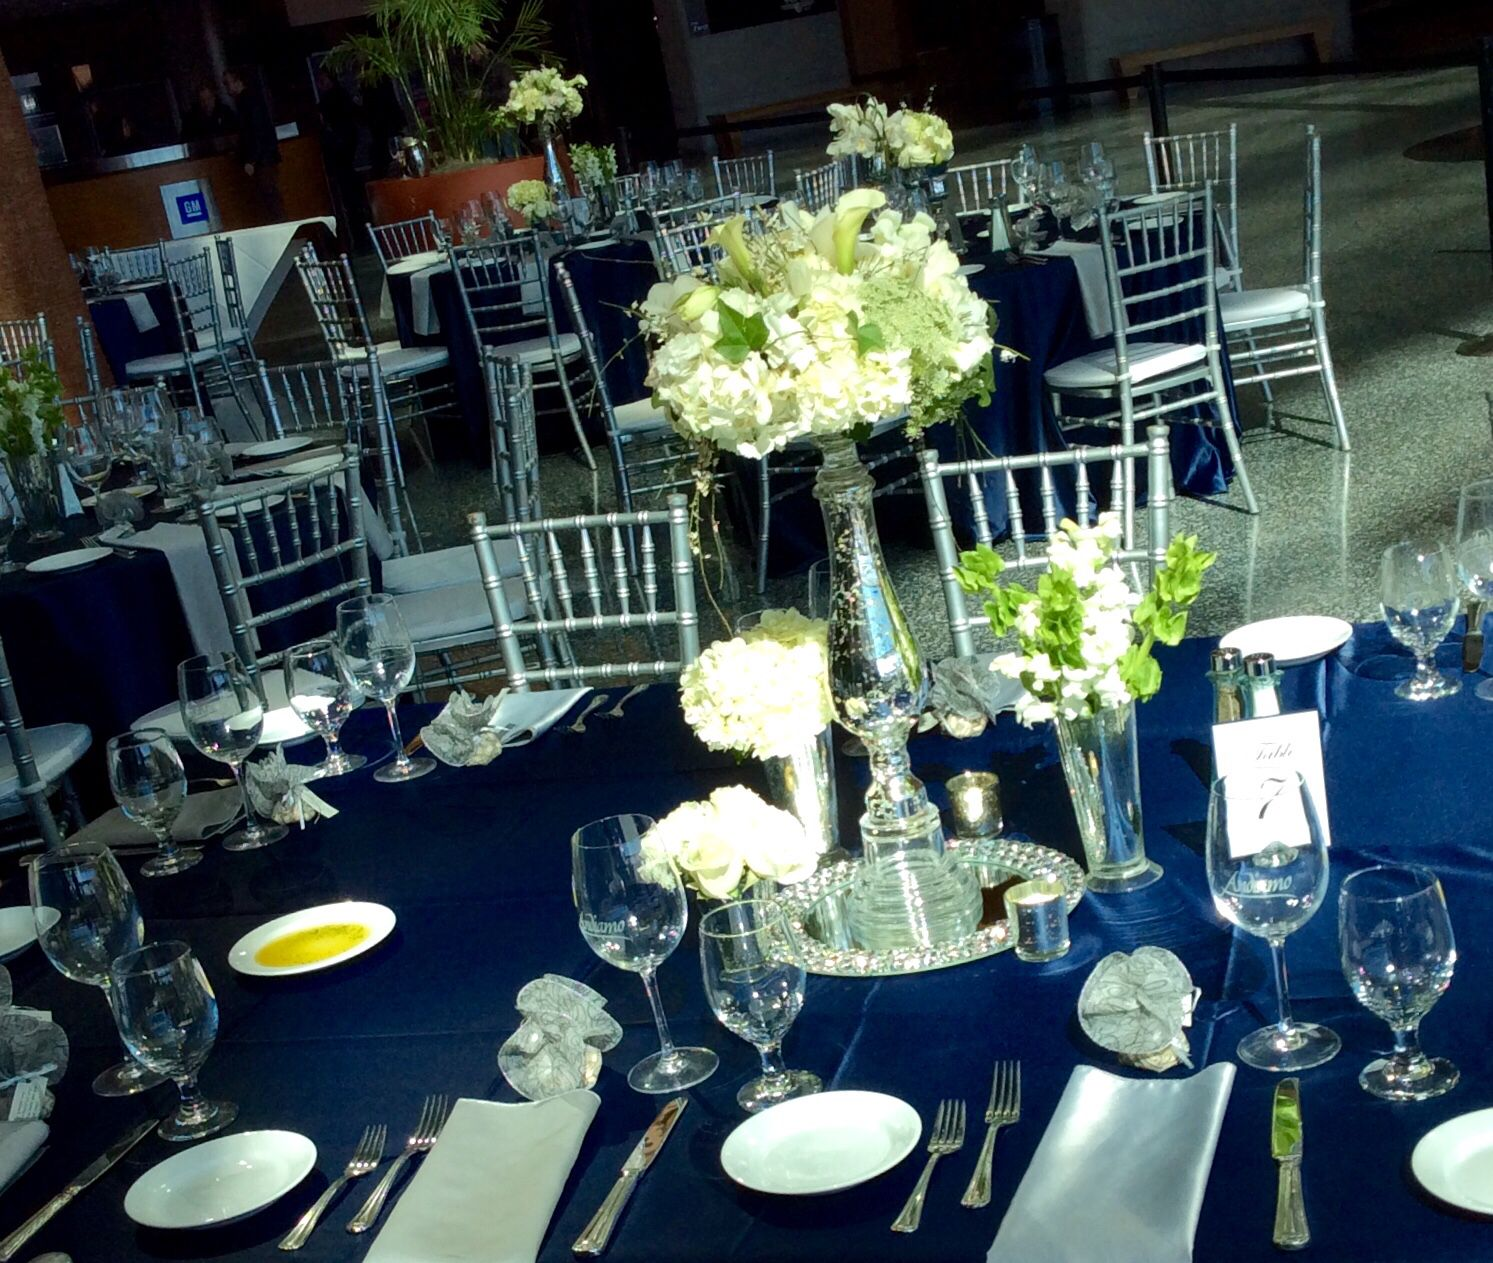 Wedding reception guest table flowers centerpieces navy